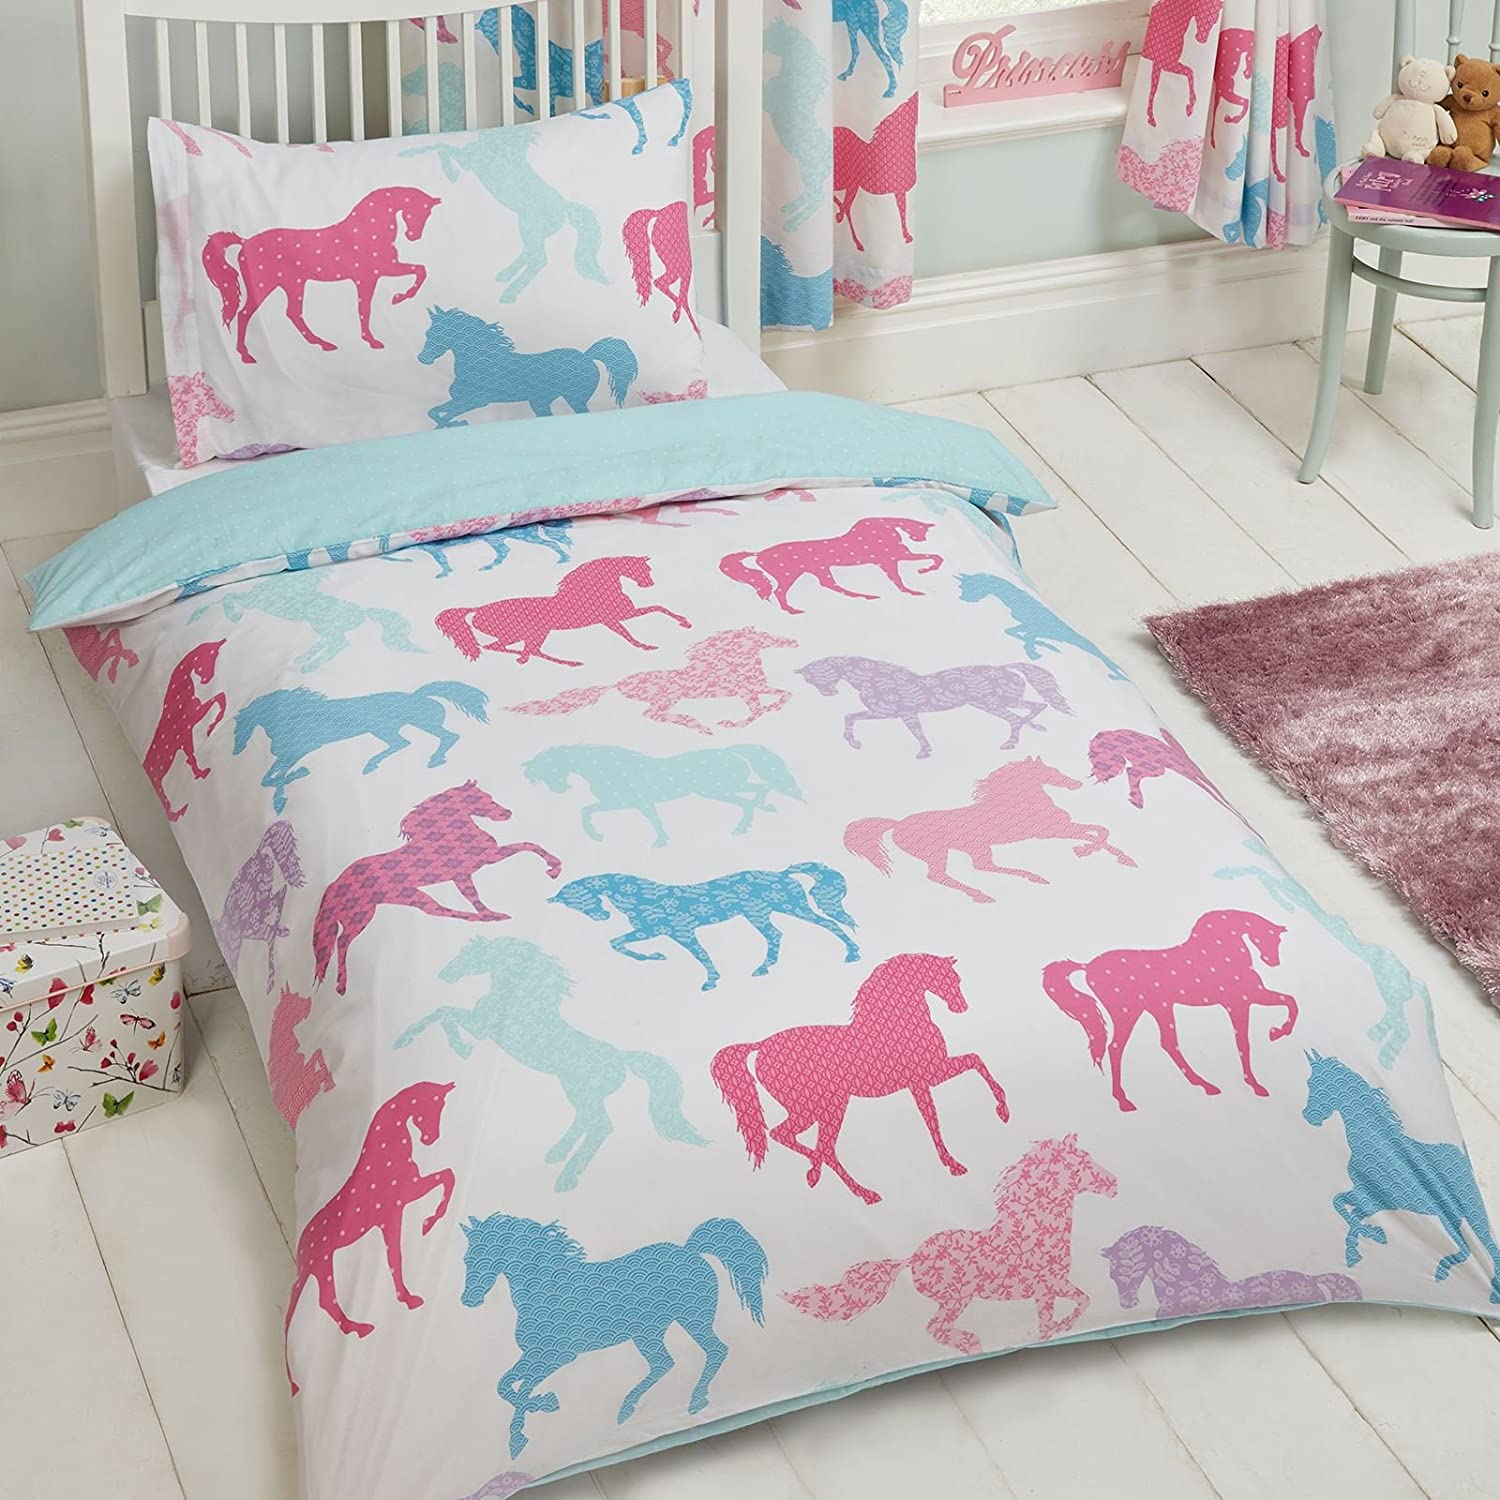 Patchwork Ponies/Horses Single Duvet Cover and Pillowcase Set by PriceRightHome Rapport